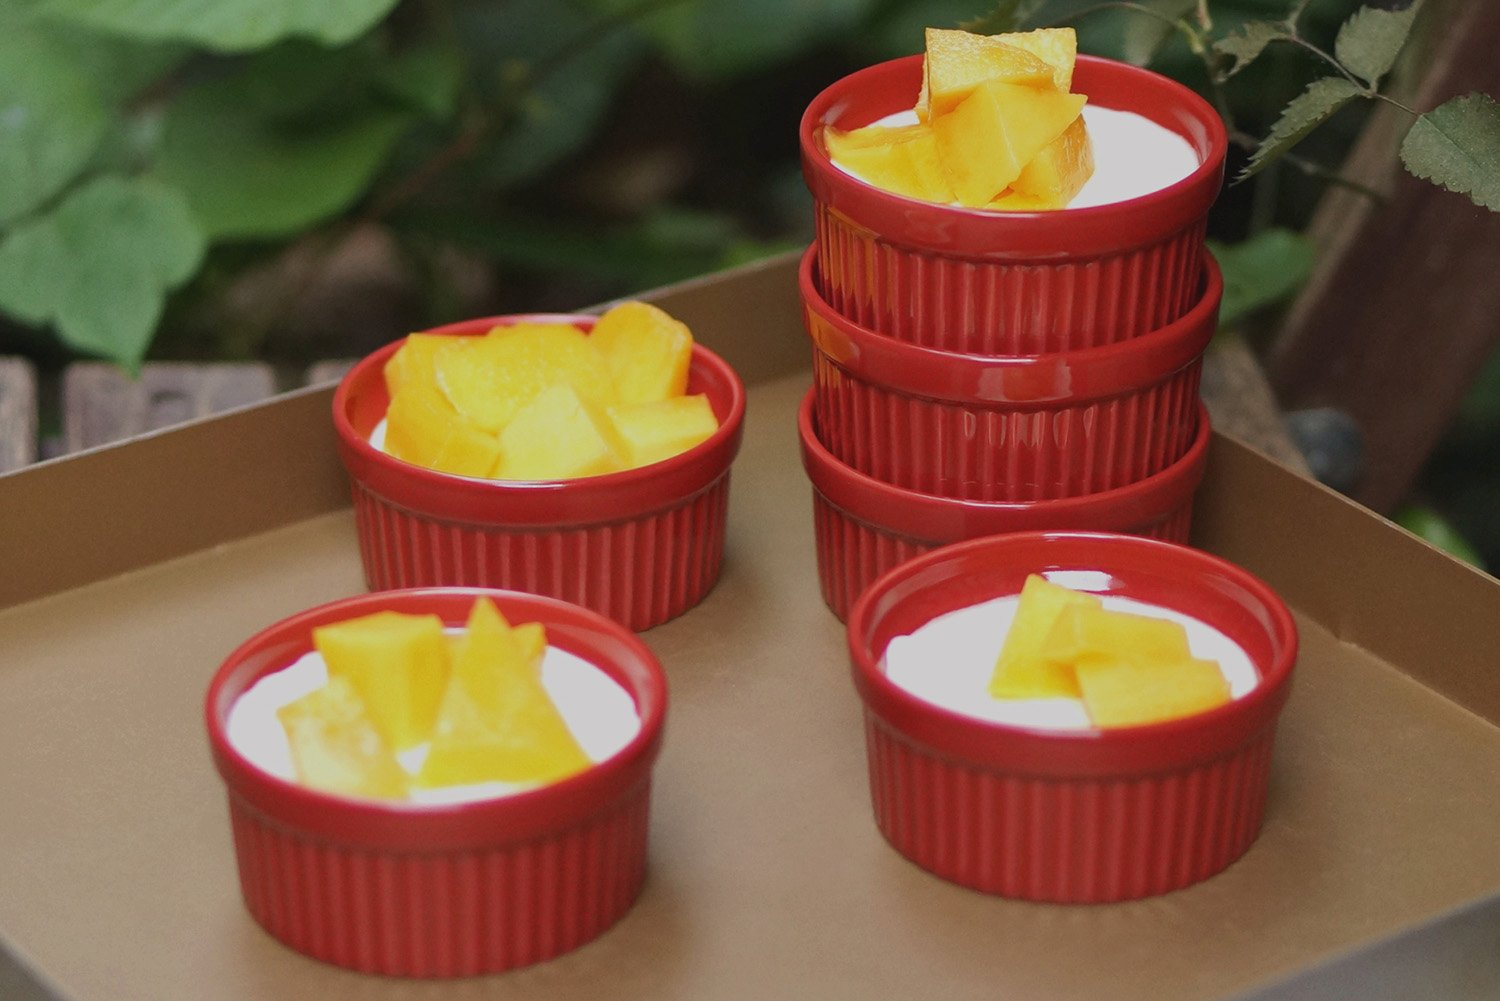 Cinf  Porcelain Ramekin Red 4 oz. Pudding Bowls Dishes Cup For Baking, Set Of 6 by Cinf (Image #7)